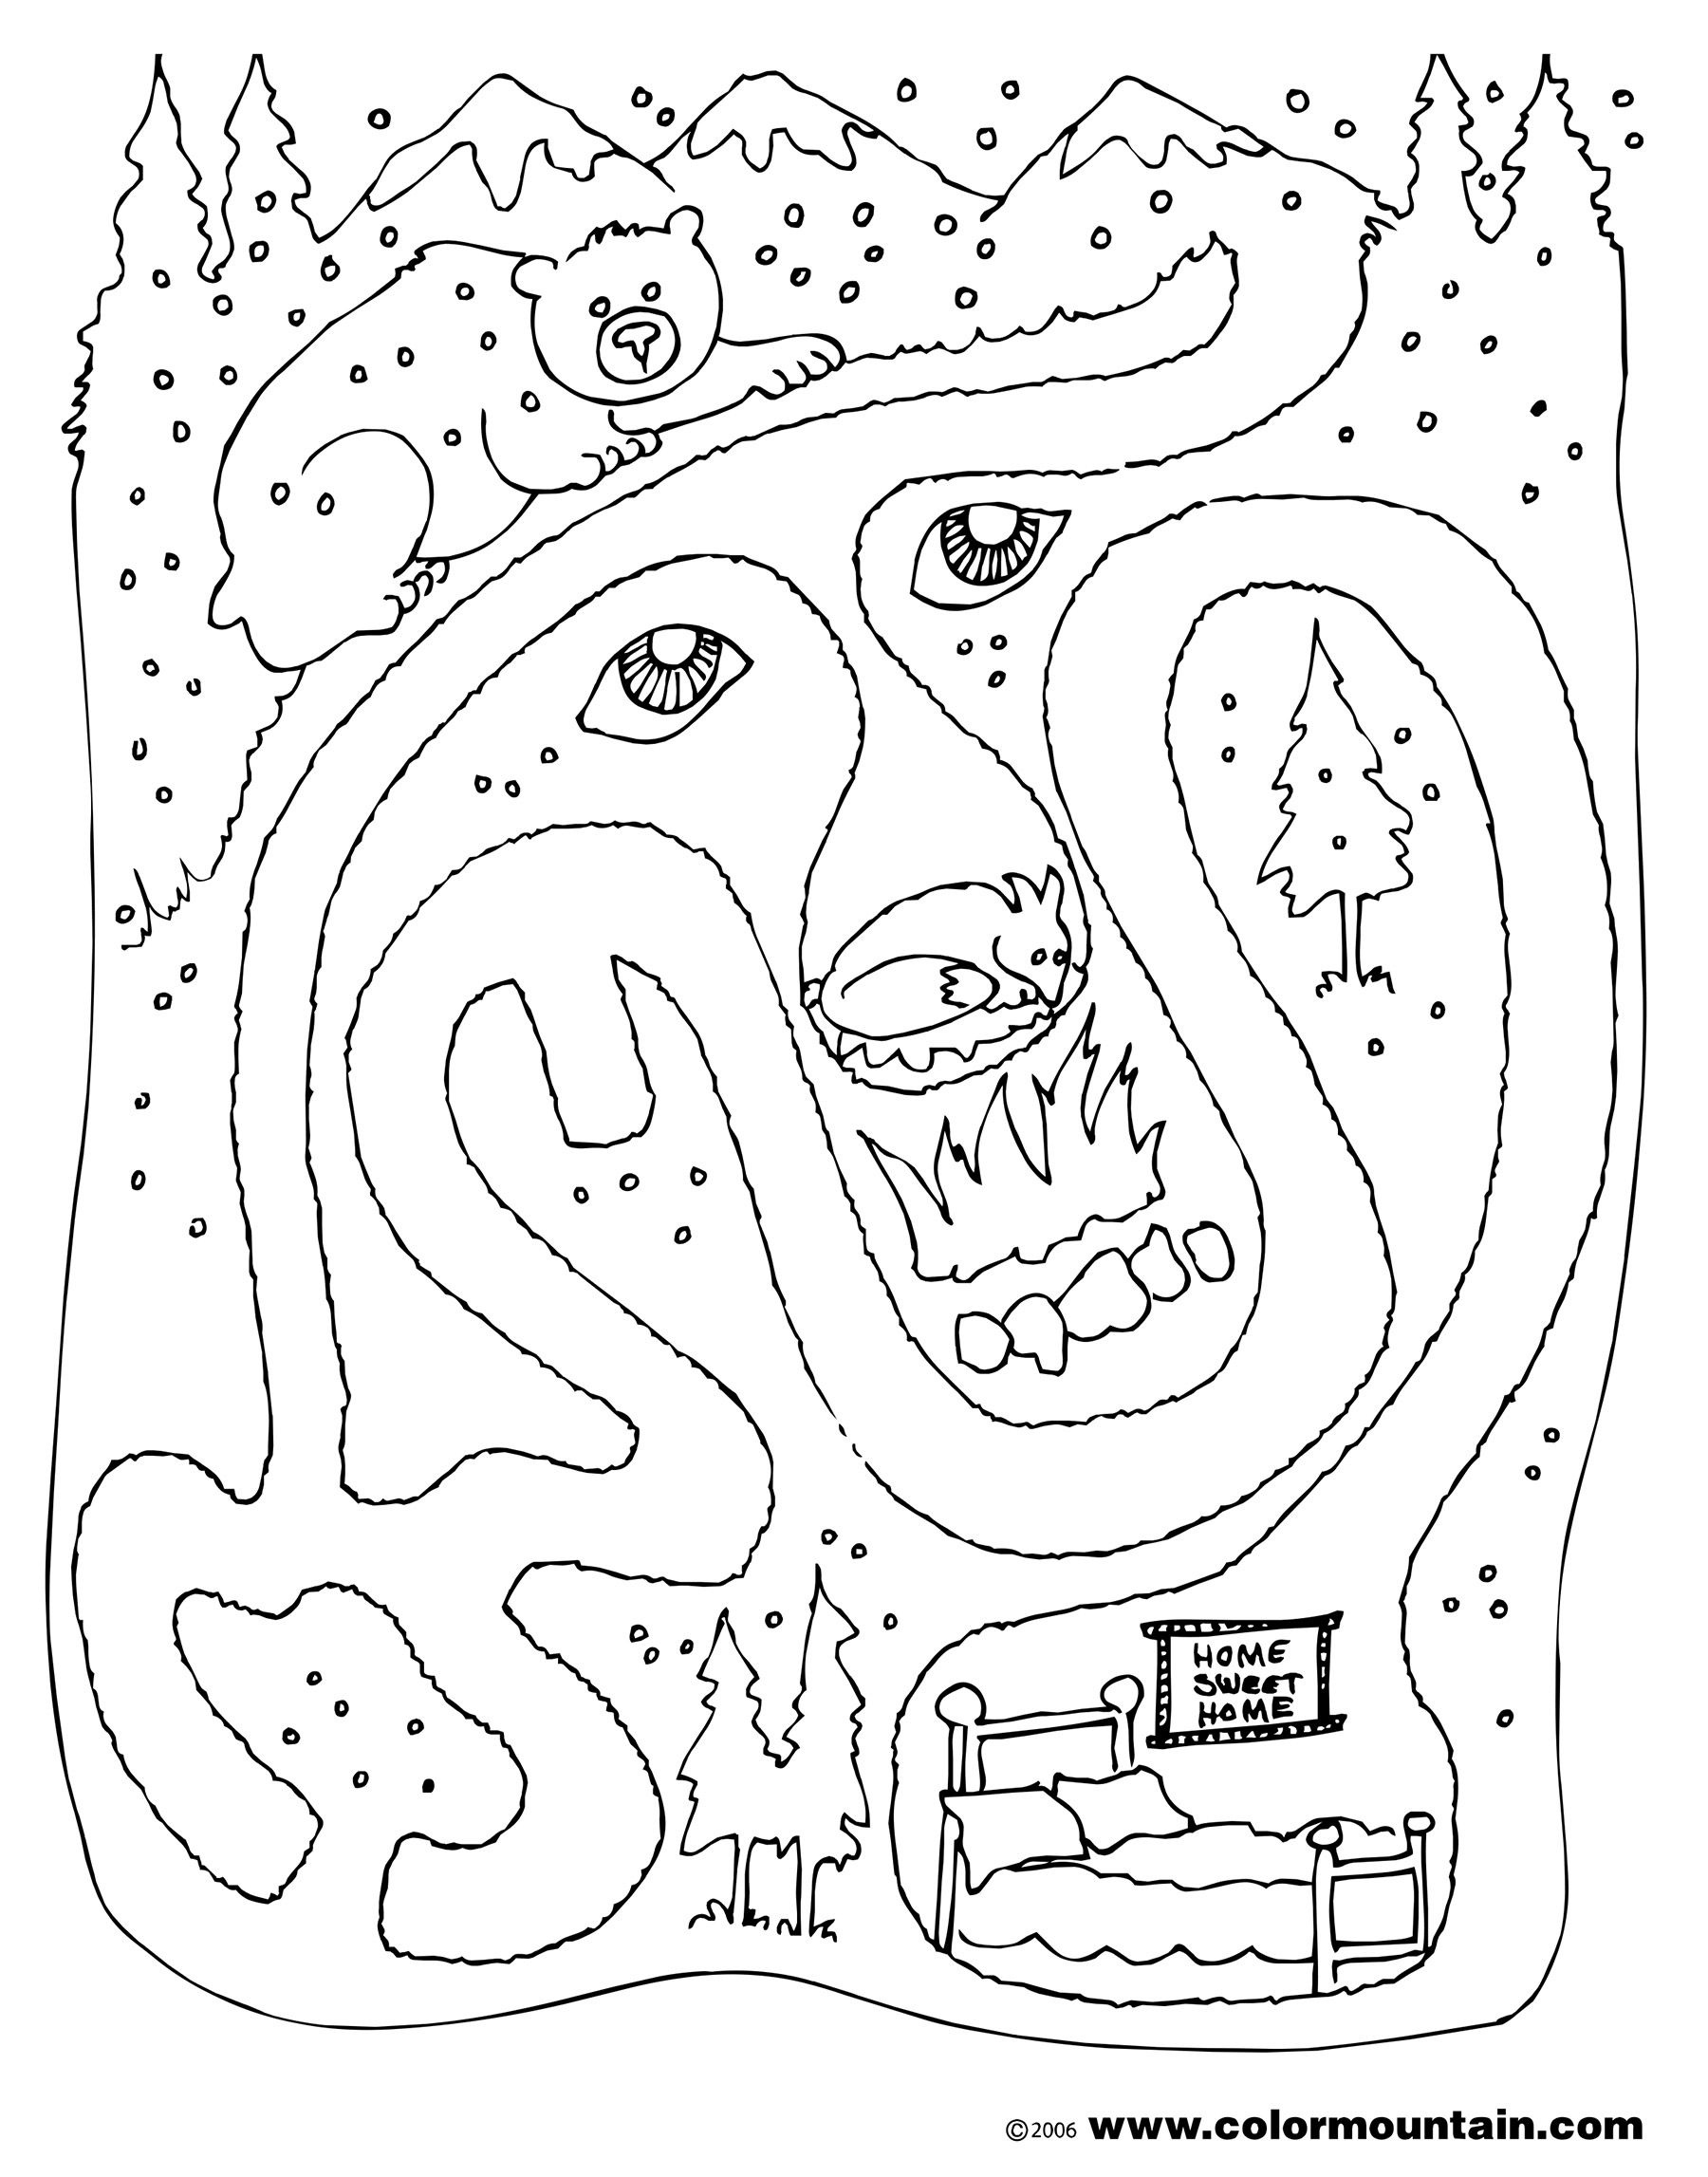 Hibernation Coloring Pages 9 Free Printable Coloring Pages - Free Printable Hibernation Worksheets